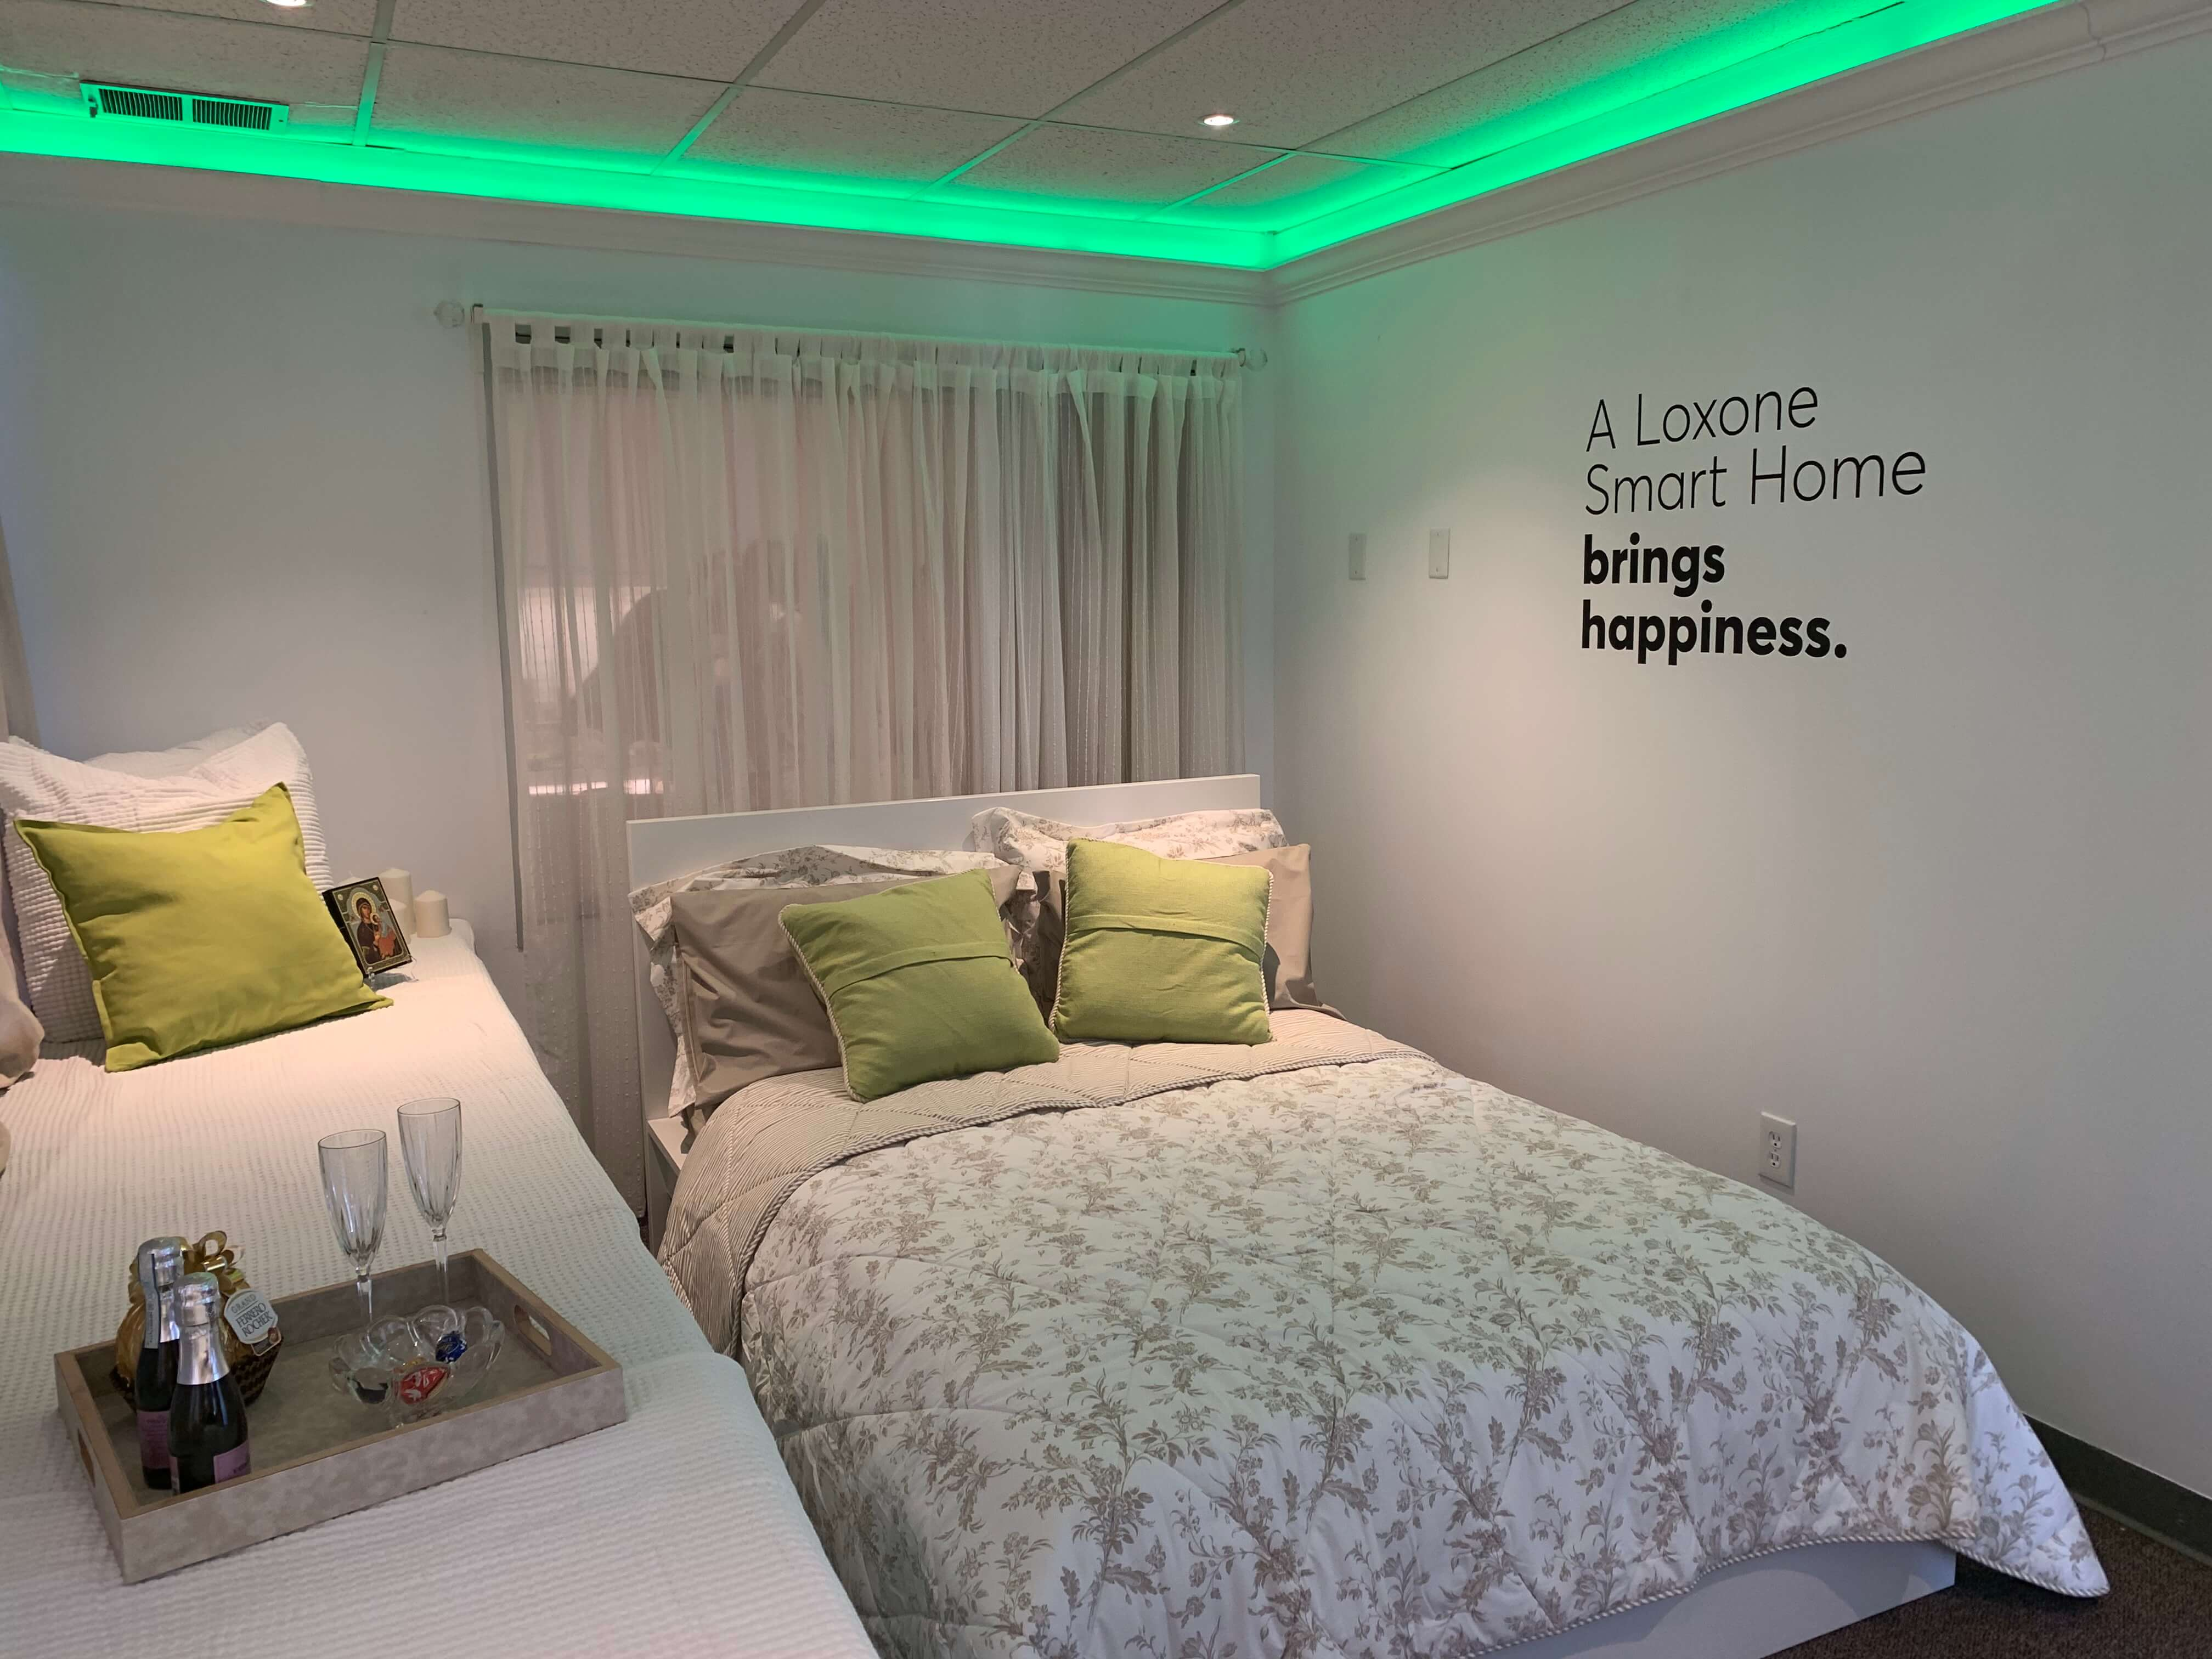 Bedroom with green LED Strip lighting and brunch tray prepared on bedside.